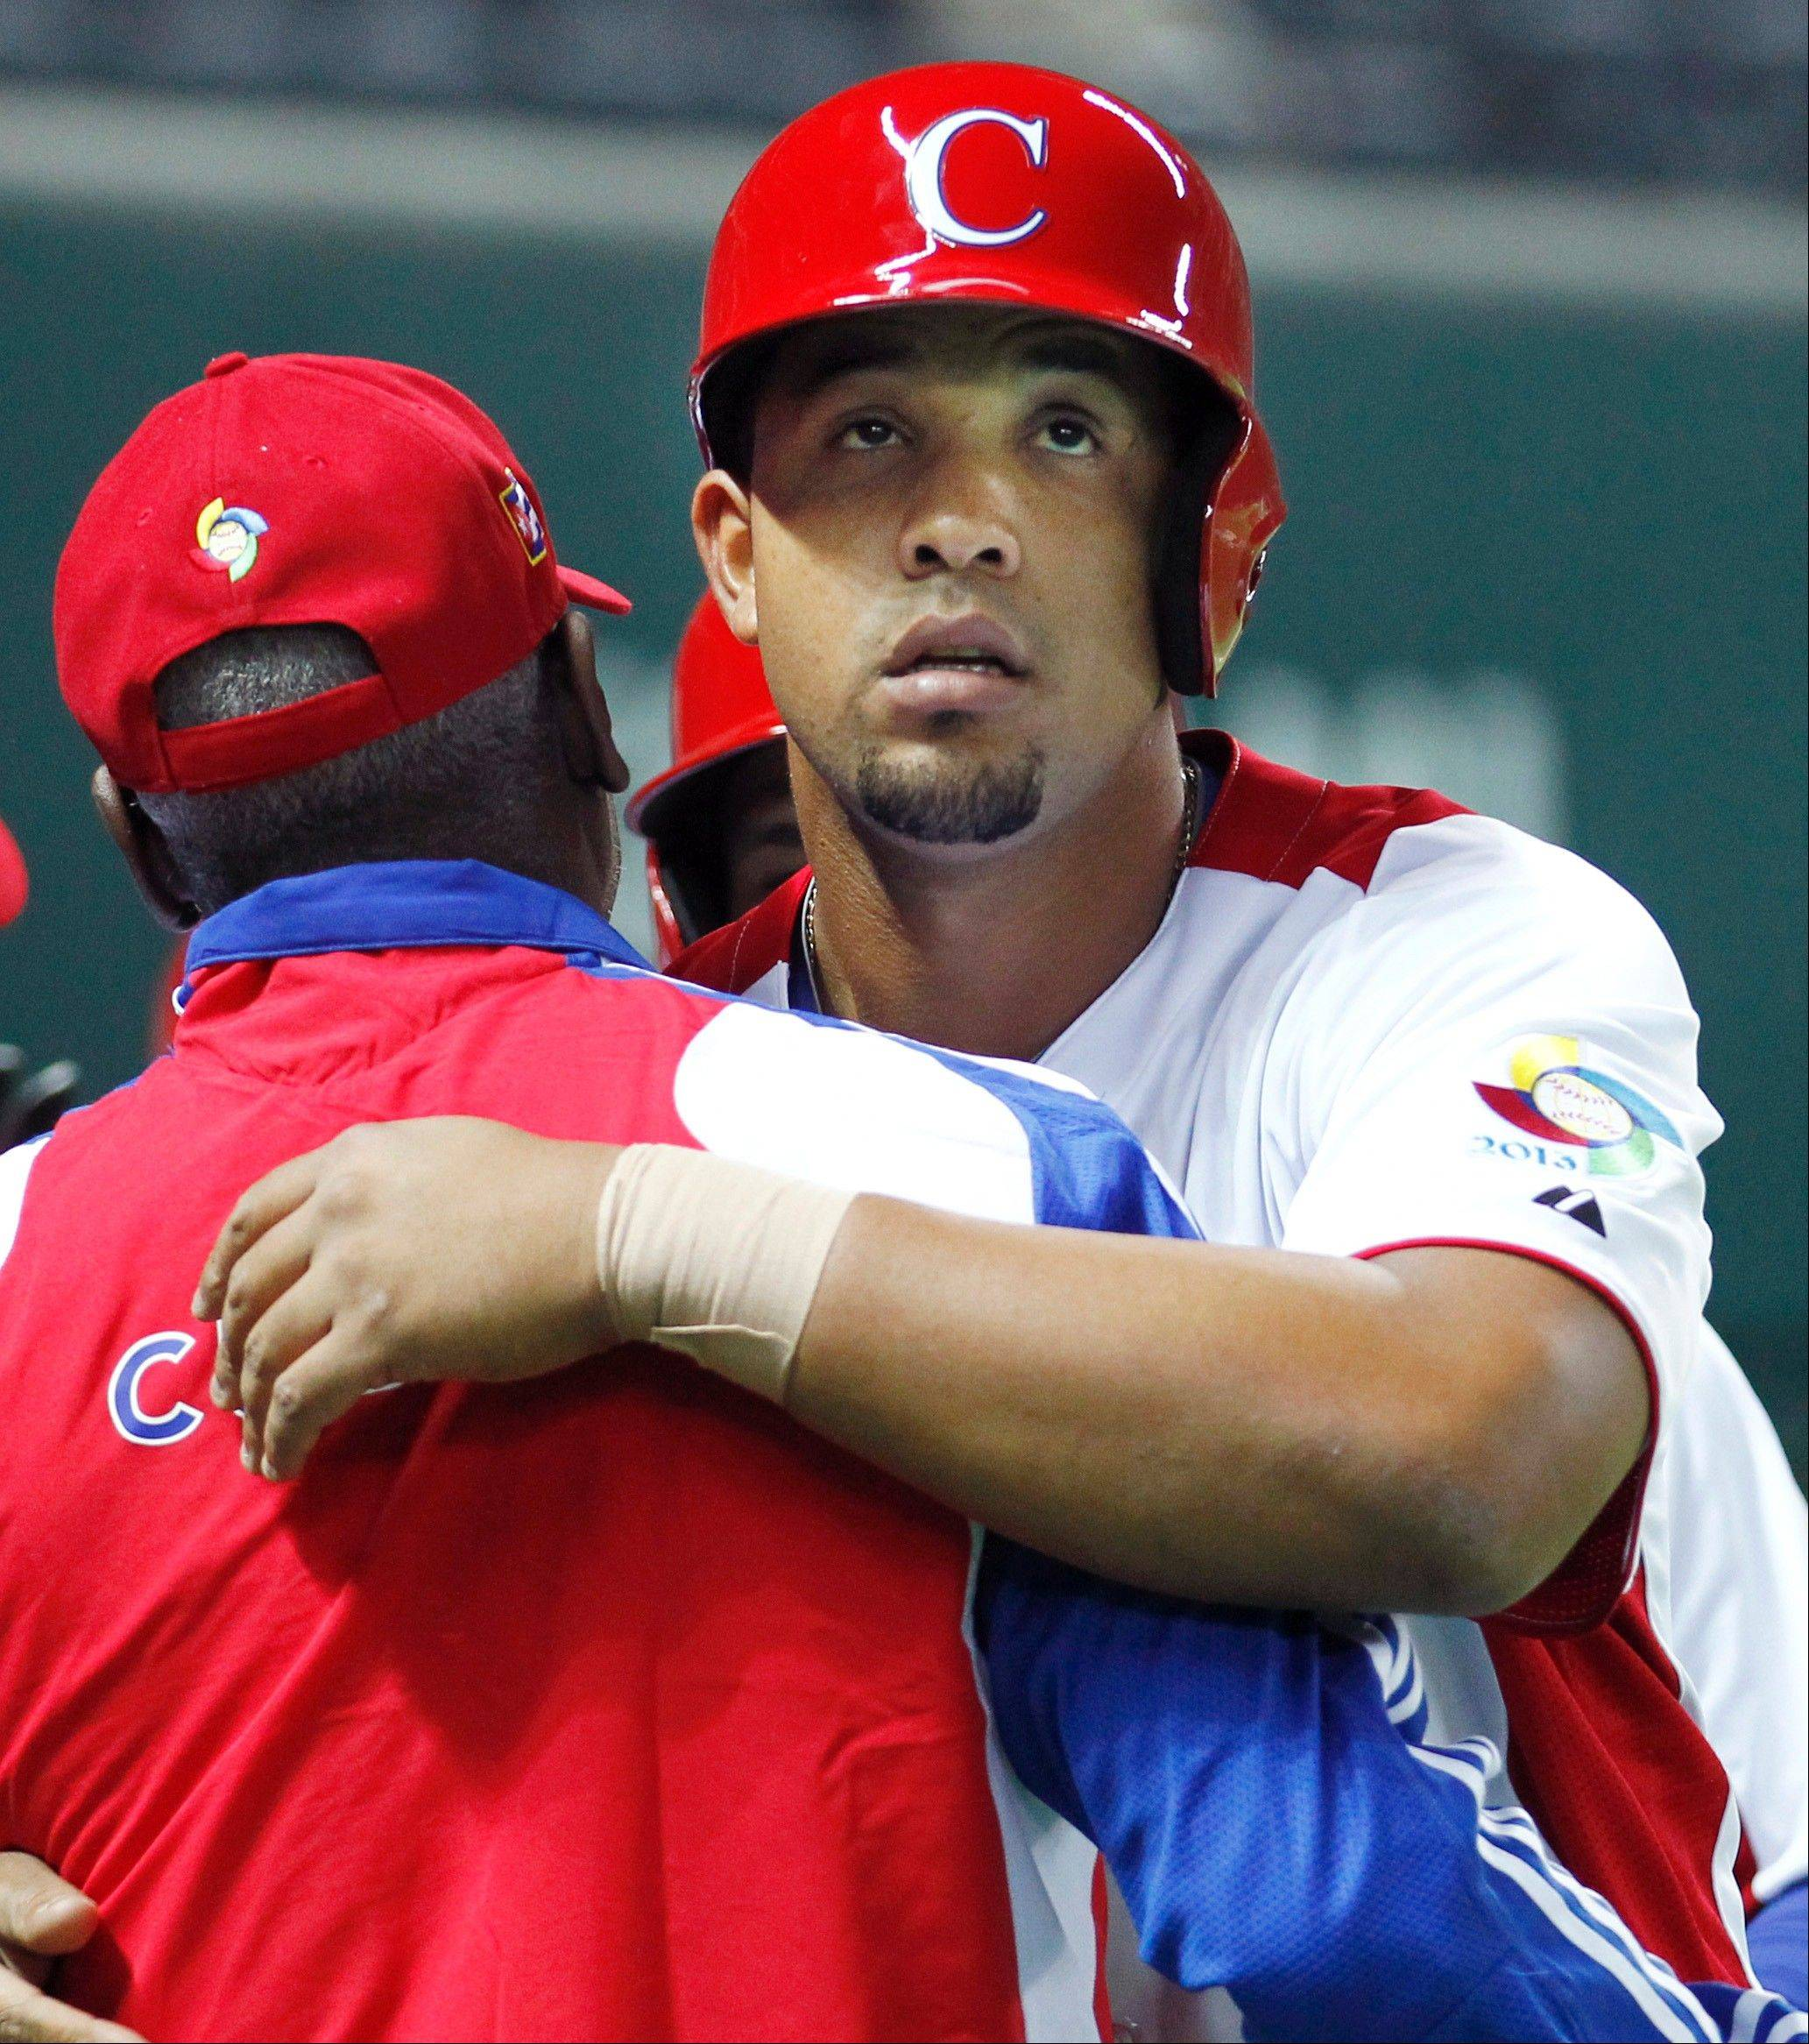 Cuba's first baseman Jose Abreu celebrates after he hits a grand slam in the fifth inning of their World Baseball Classic first round game against China in Fukuoka, Japan, Monday, March 4, 2013. (AP Photo/Koji Sasahara)